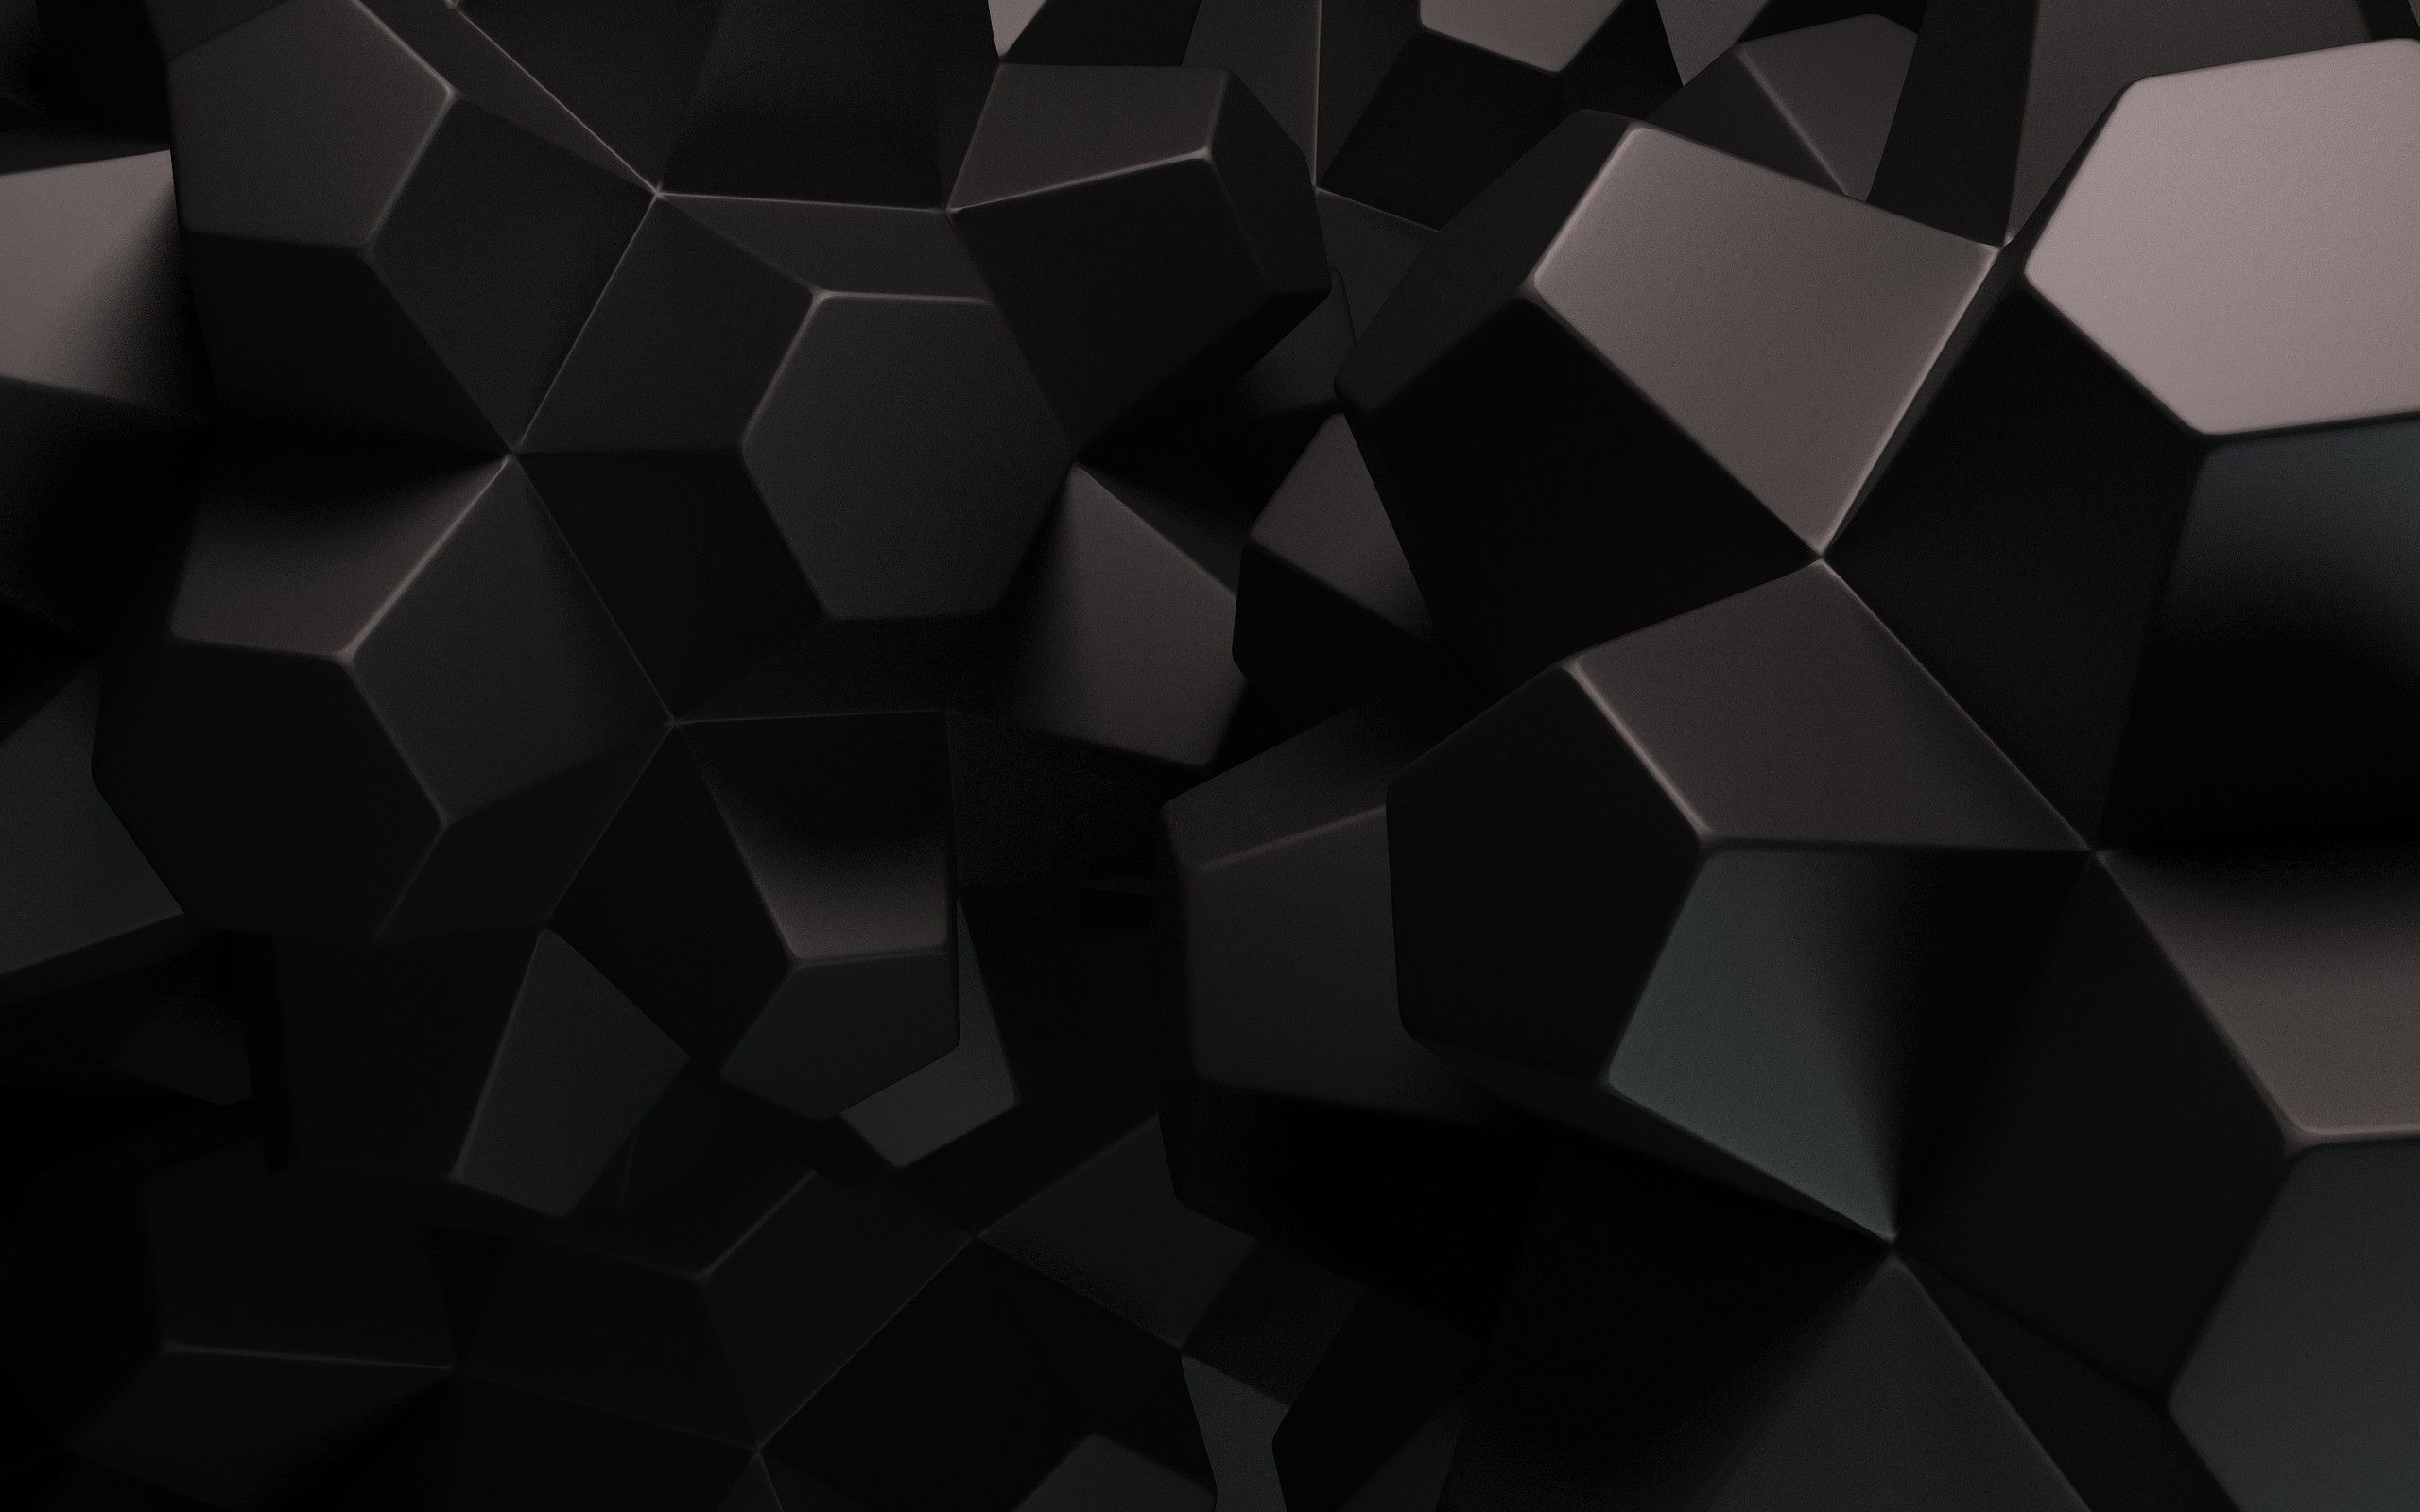 Black+and+Green+Vector+Abstract+Desktop+Wallpaper+HD